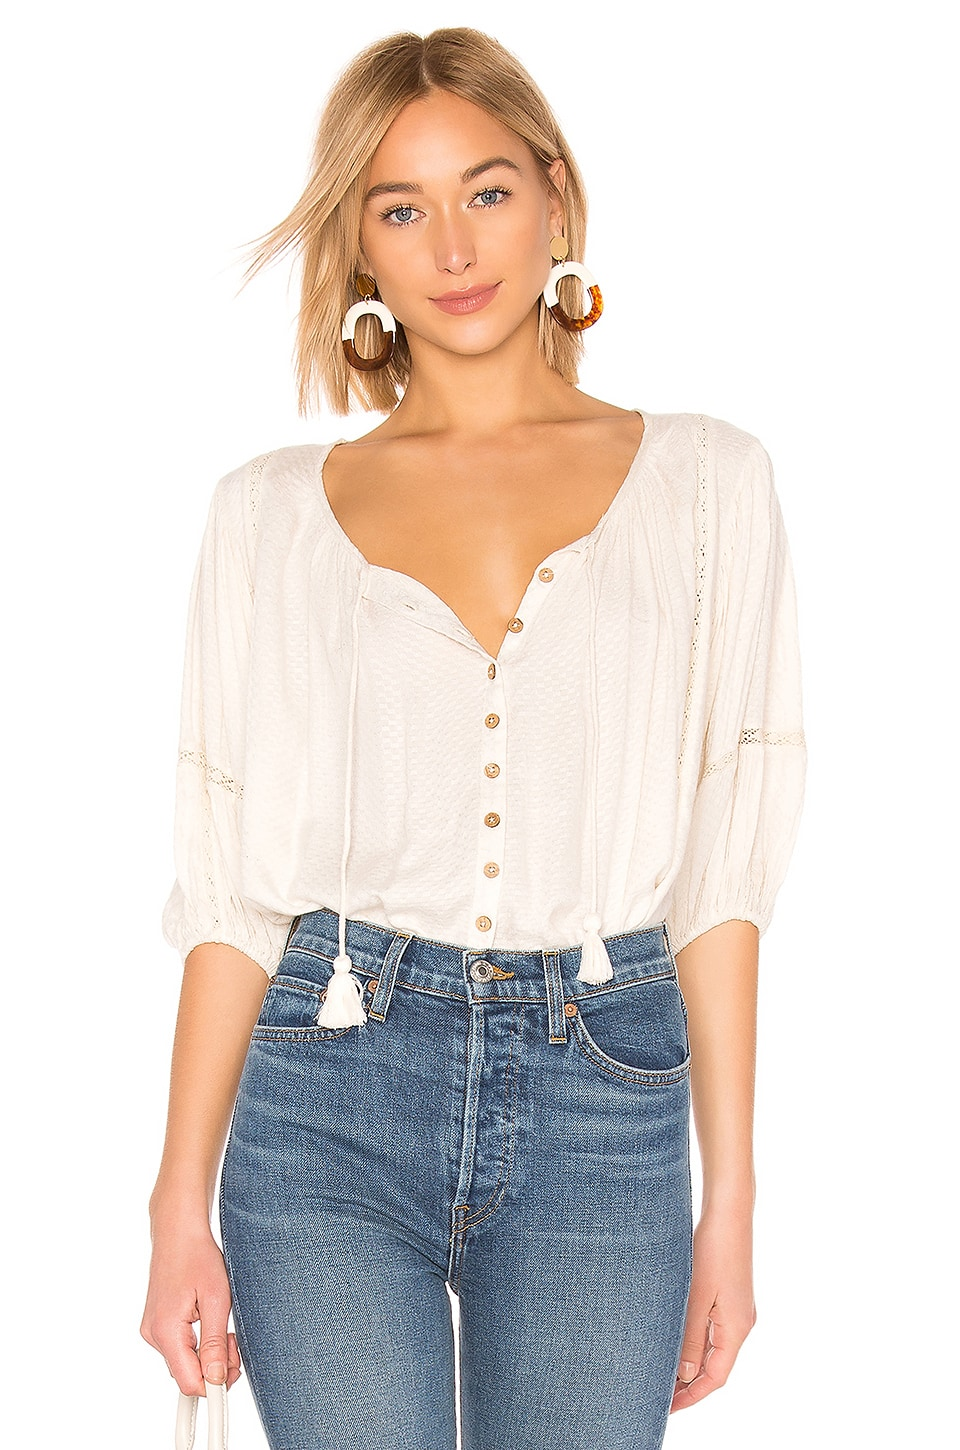 Spell & The Gypsy Collective Lottie Veggie Dye Blouse in Cream